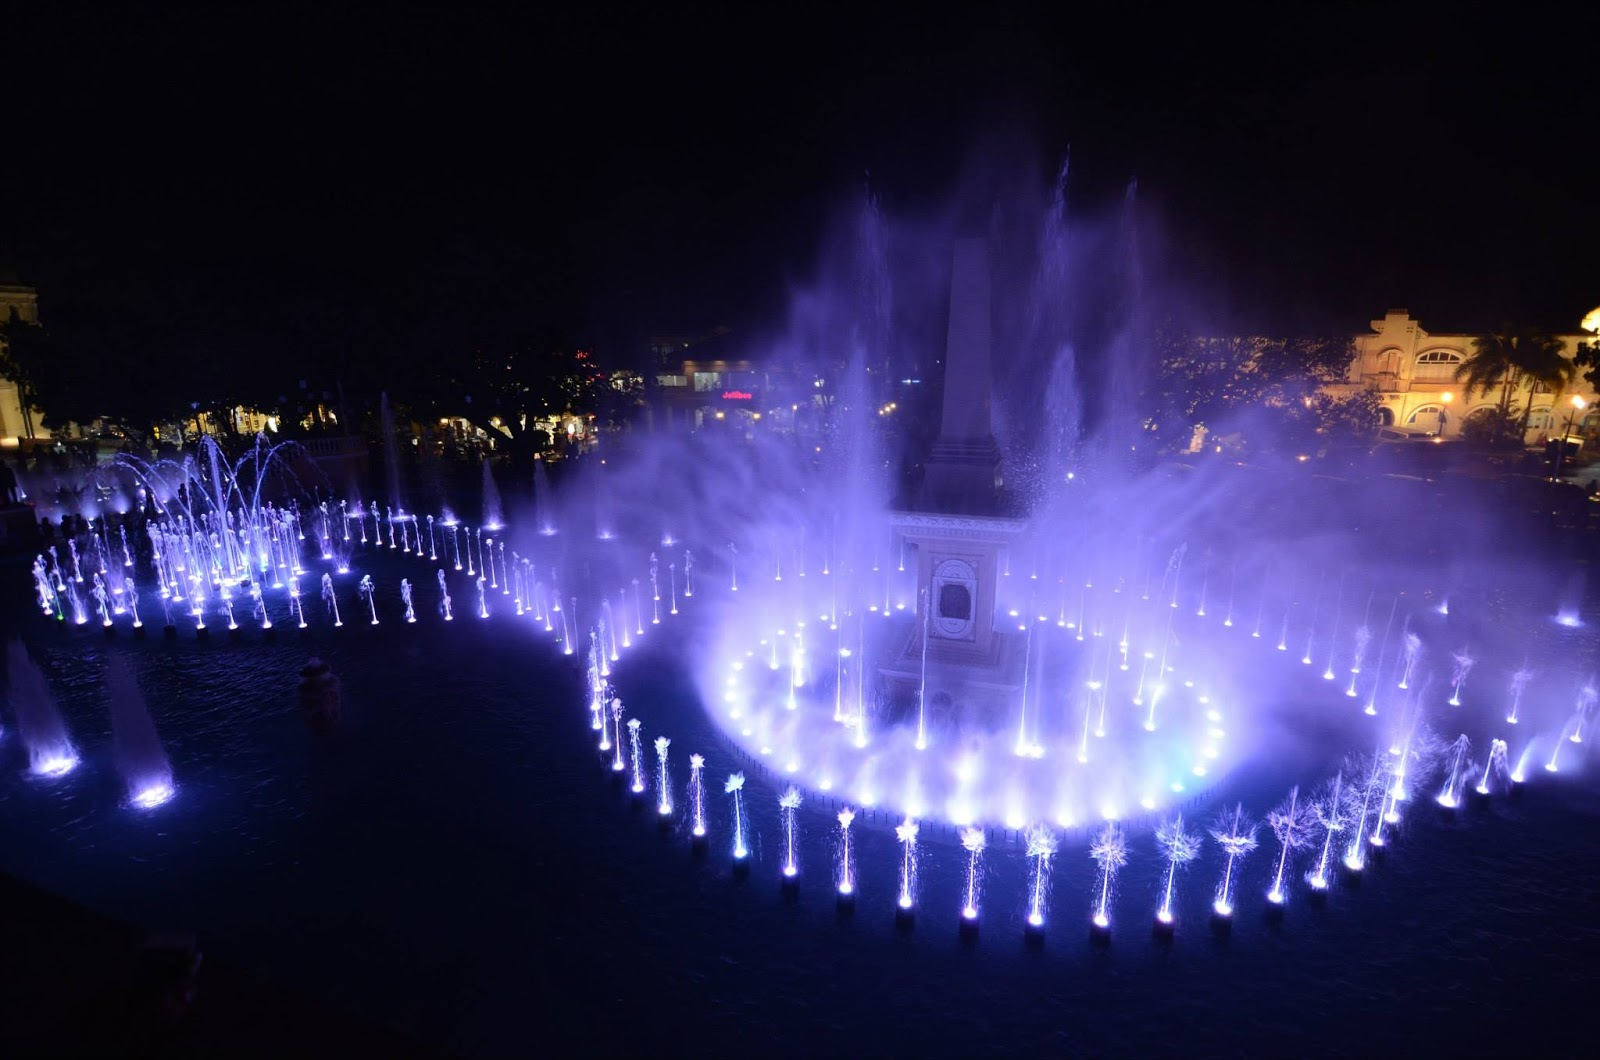 Vigan City's Plaza Salcedo Dancing Fountains